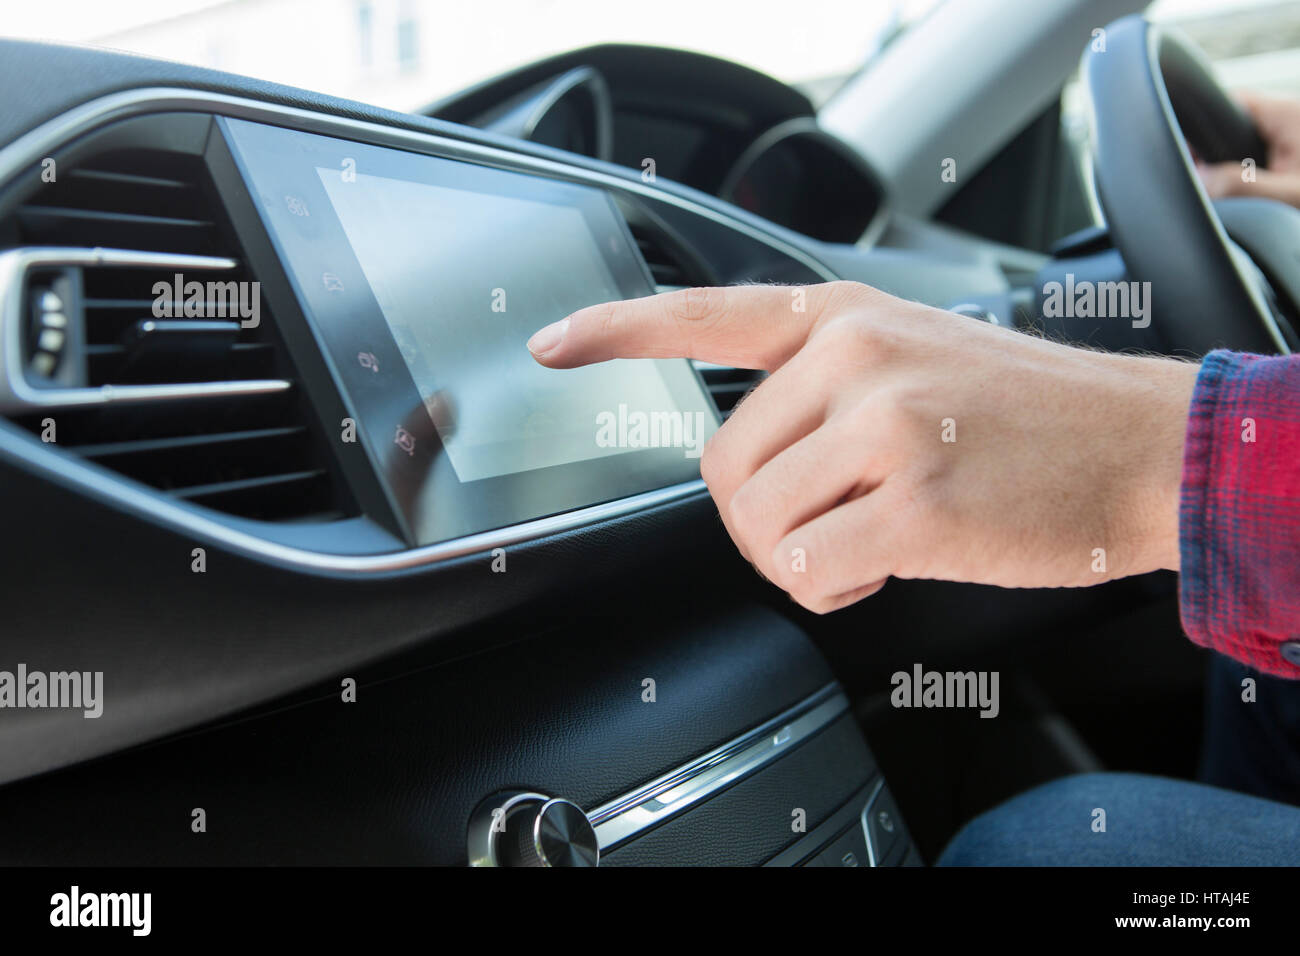 Close Up Of Driver Using Touchscreen In Car - Stock Image